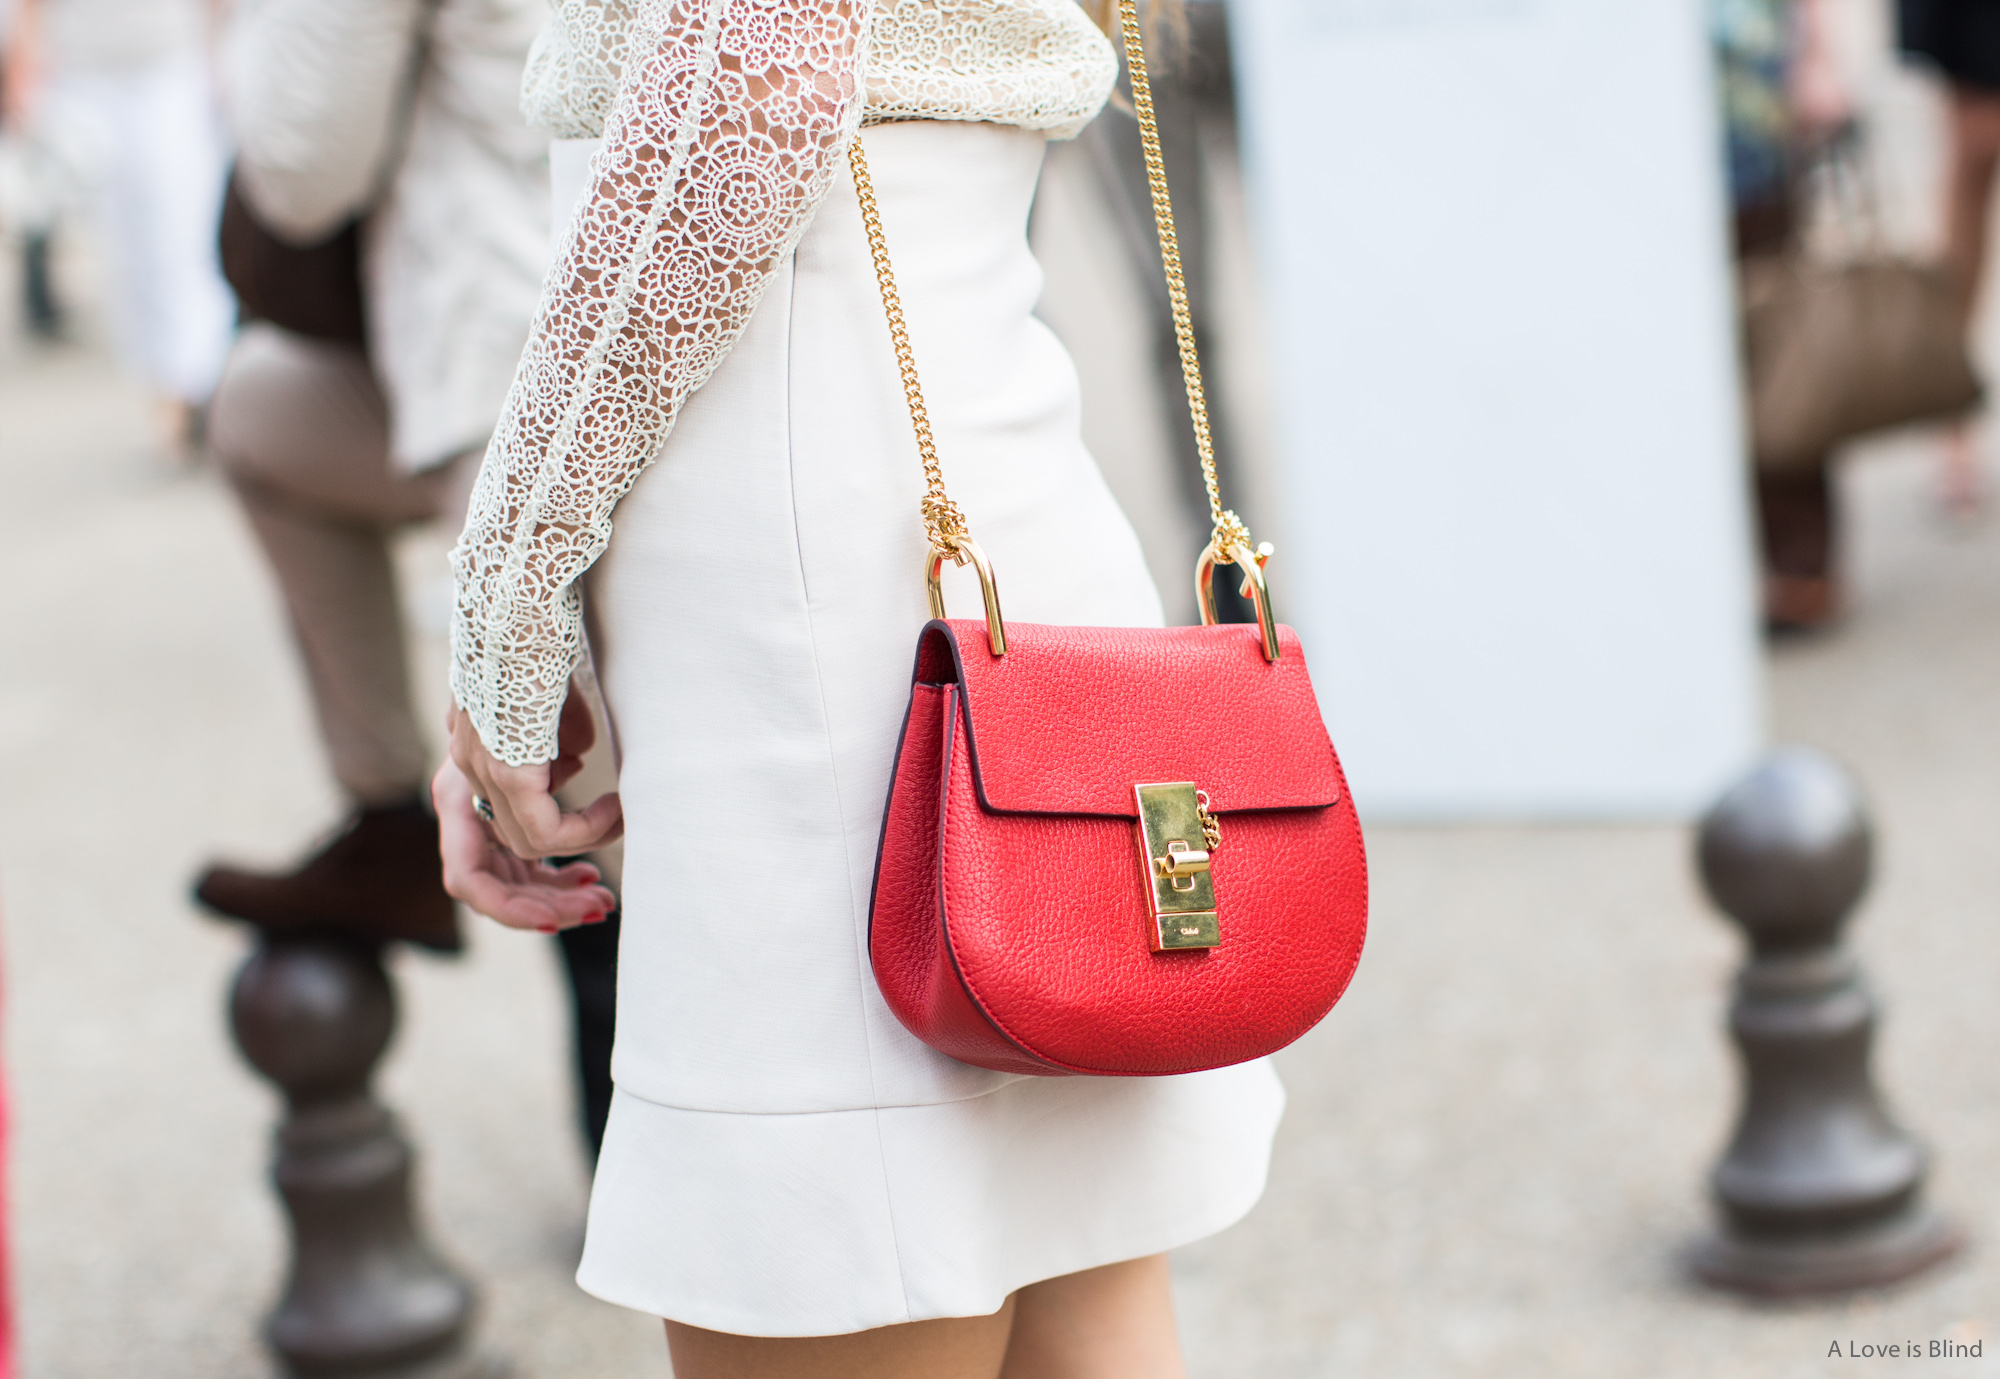 Paris Fashionweek ss2015 day 5, outside Chloé